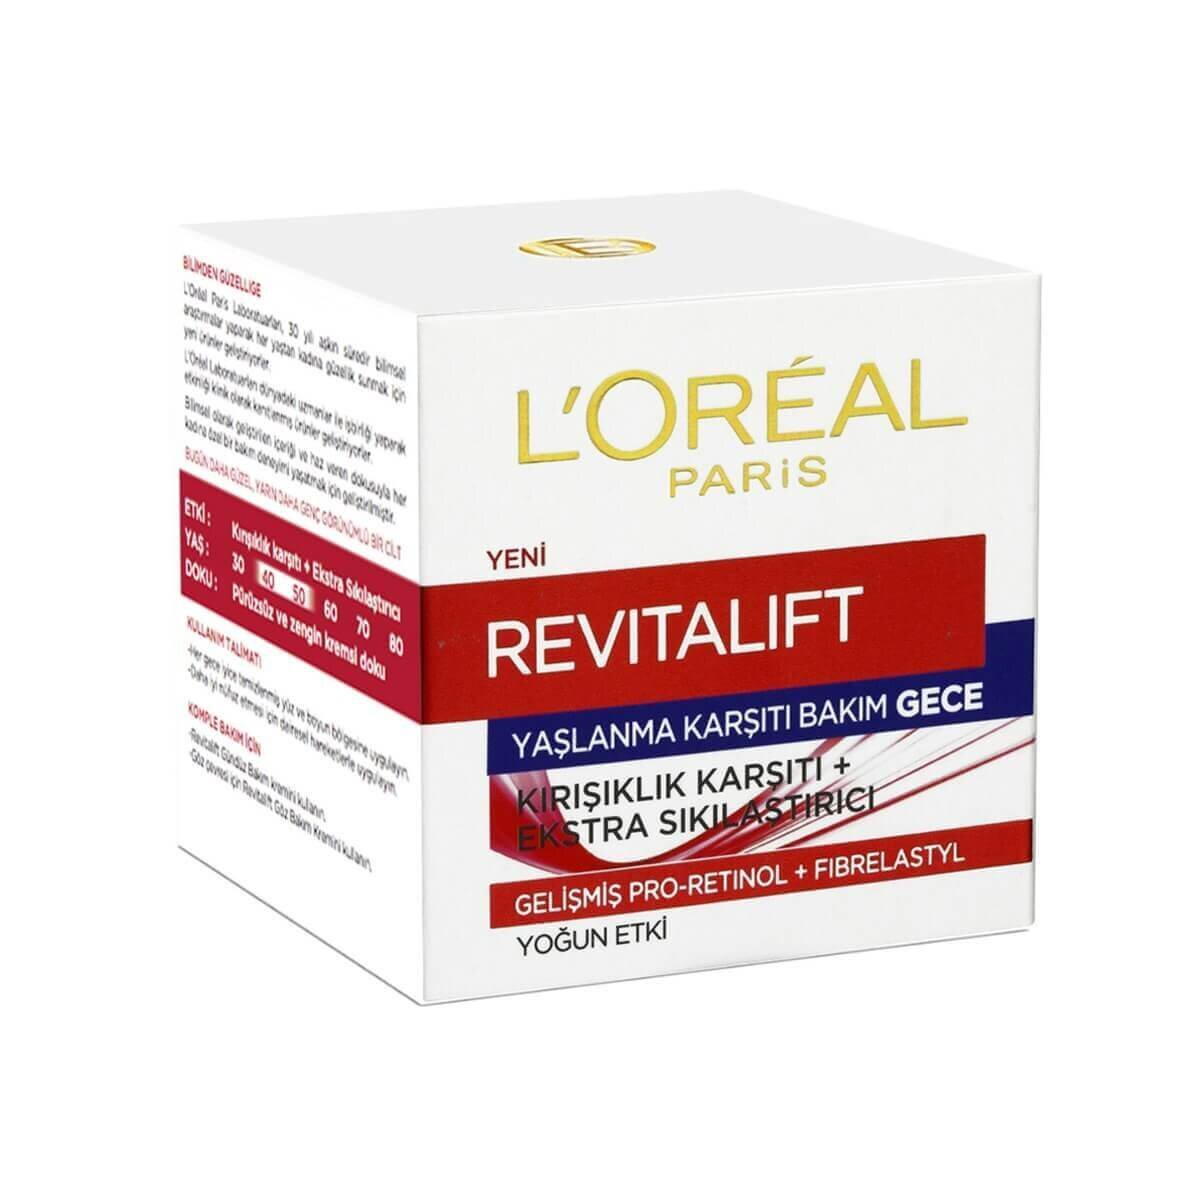 Revitalift Gece 50ml